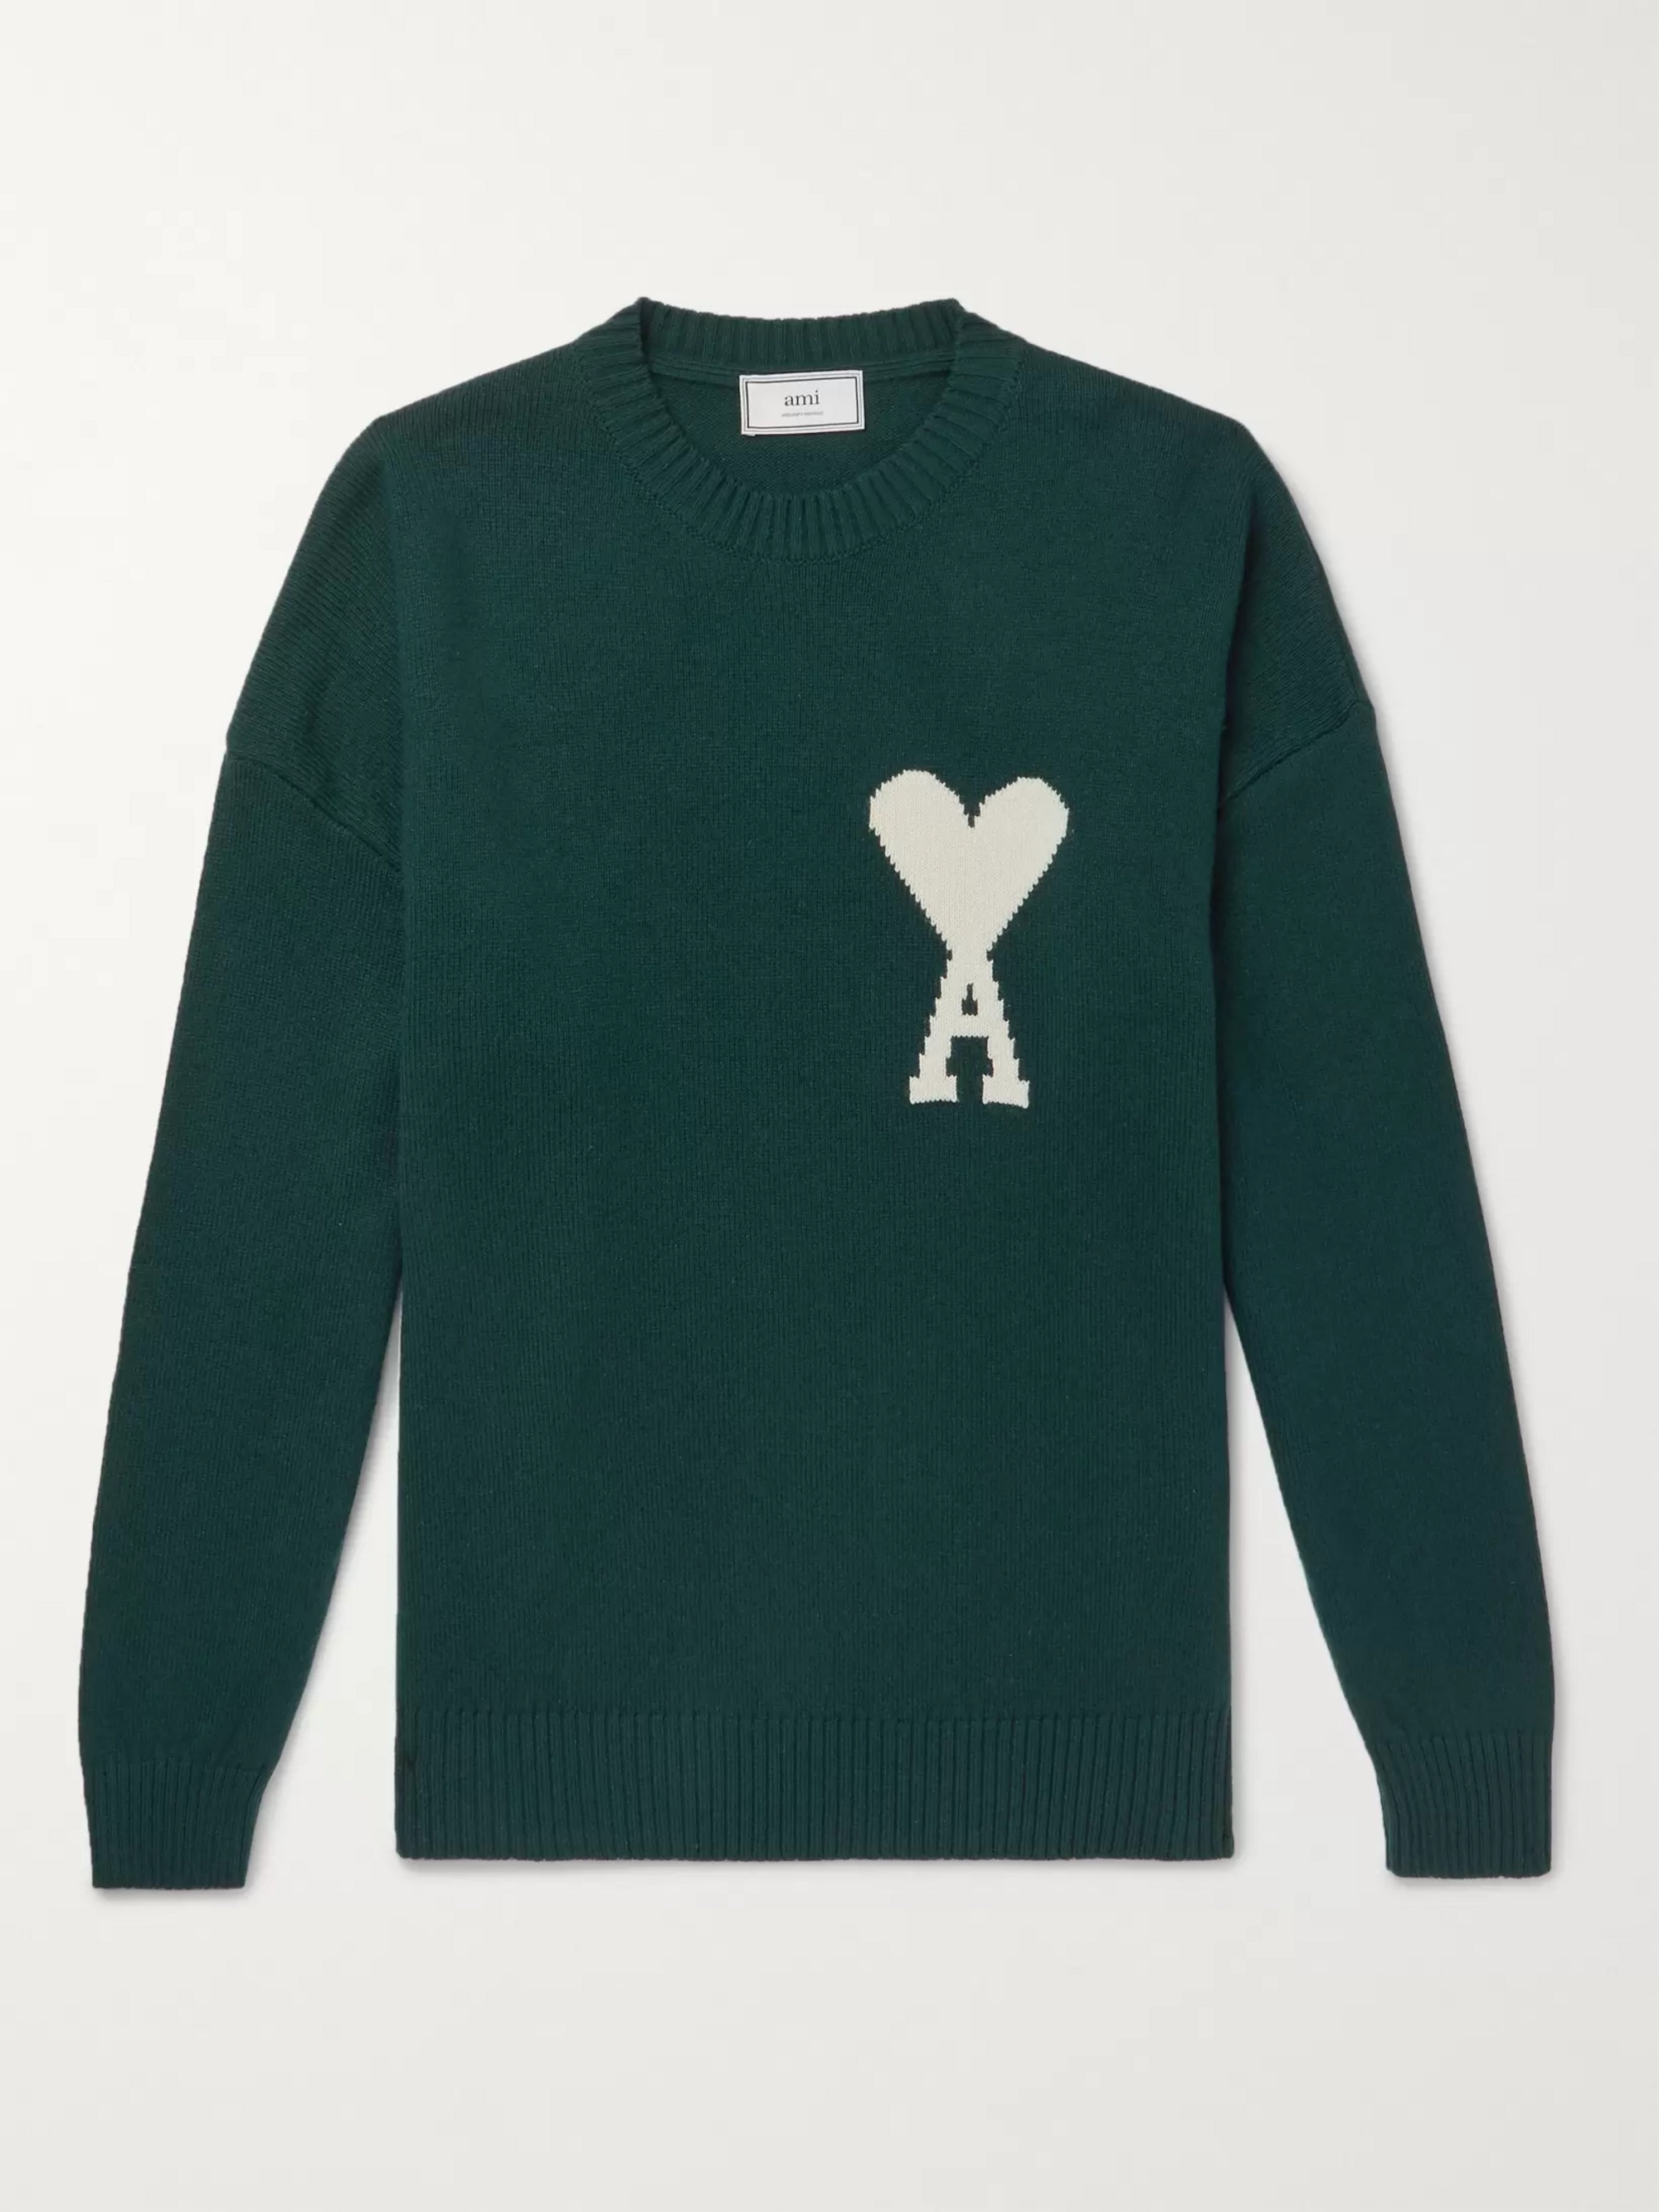 AMI Oversized Logo-Intarsia Knitted Sweater